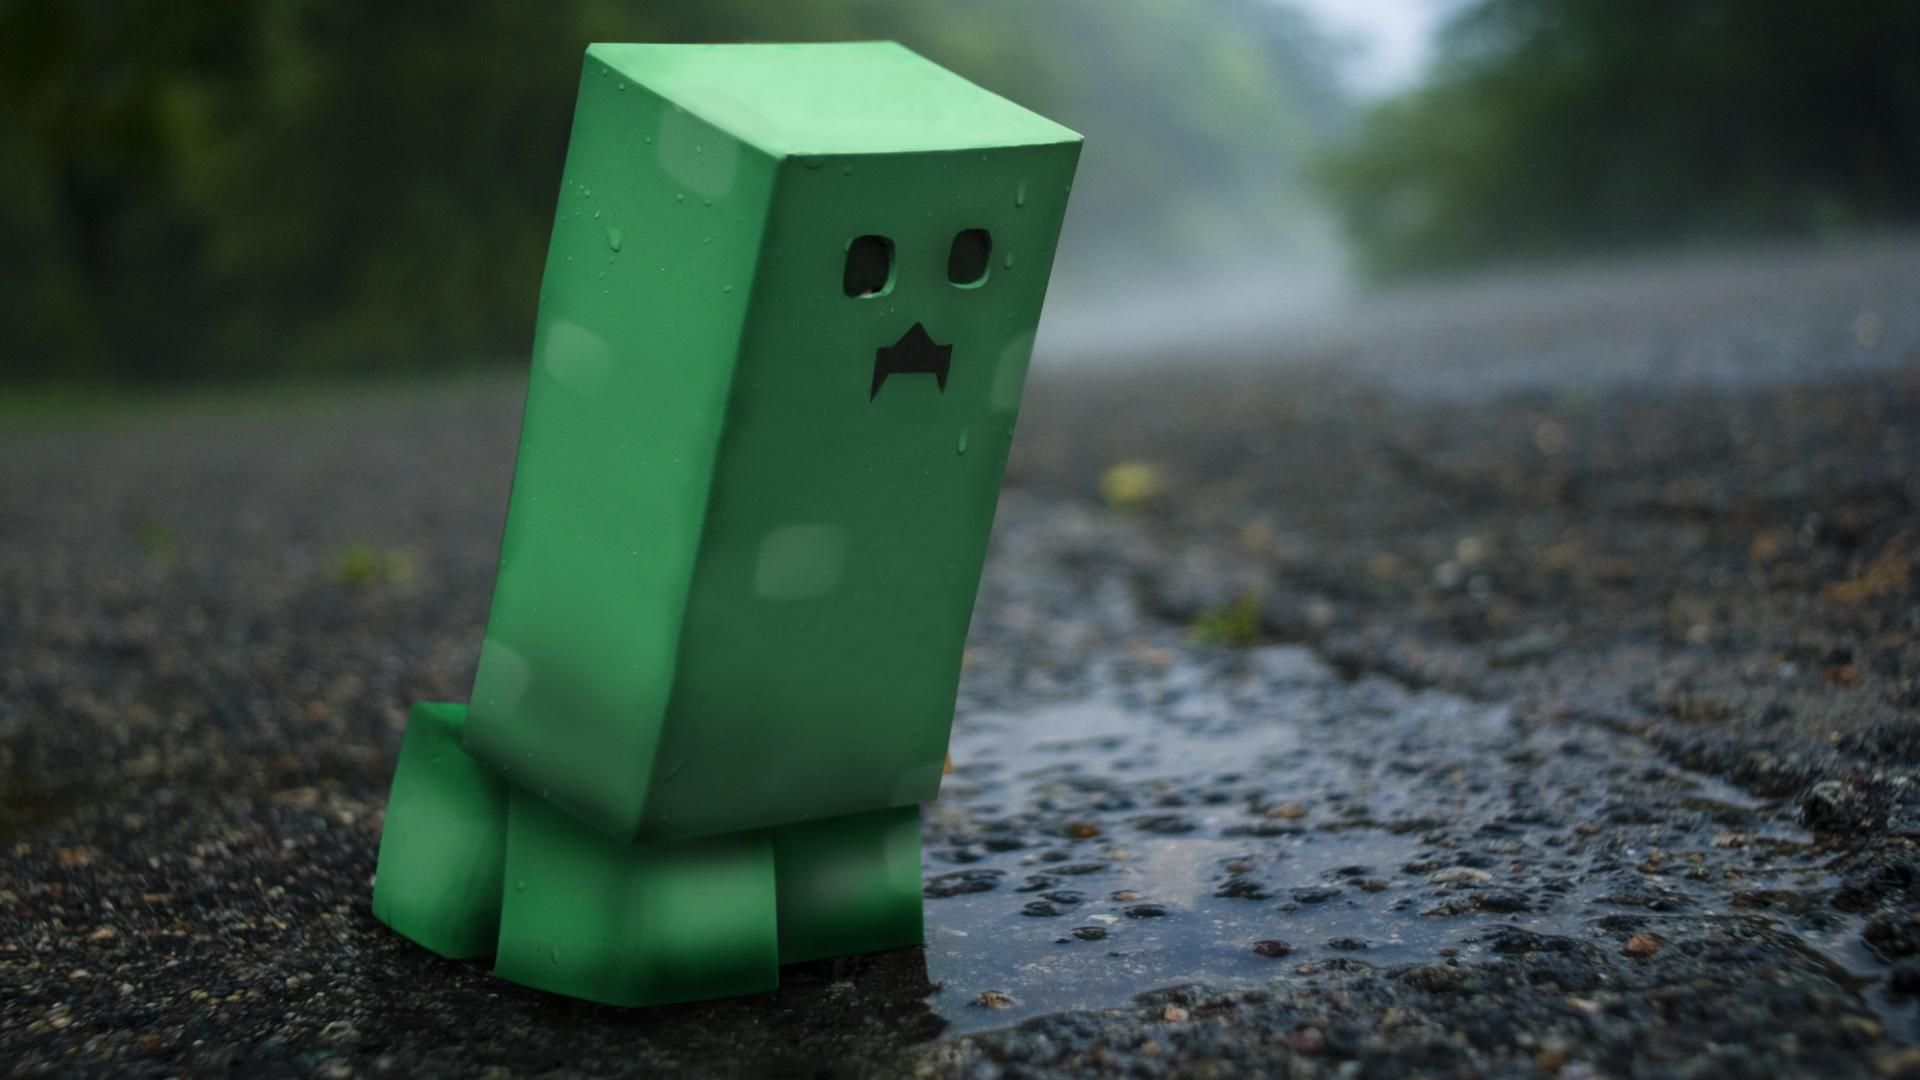 Minecraft Creeper Wallpapers 3d Hd Wallpaper Minecraft Wallpaper Minecraft Pictures Wallpaper